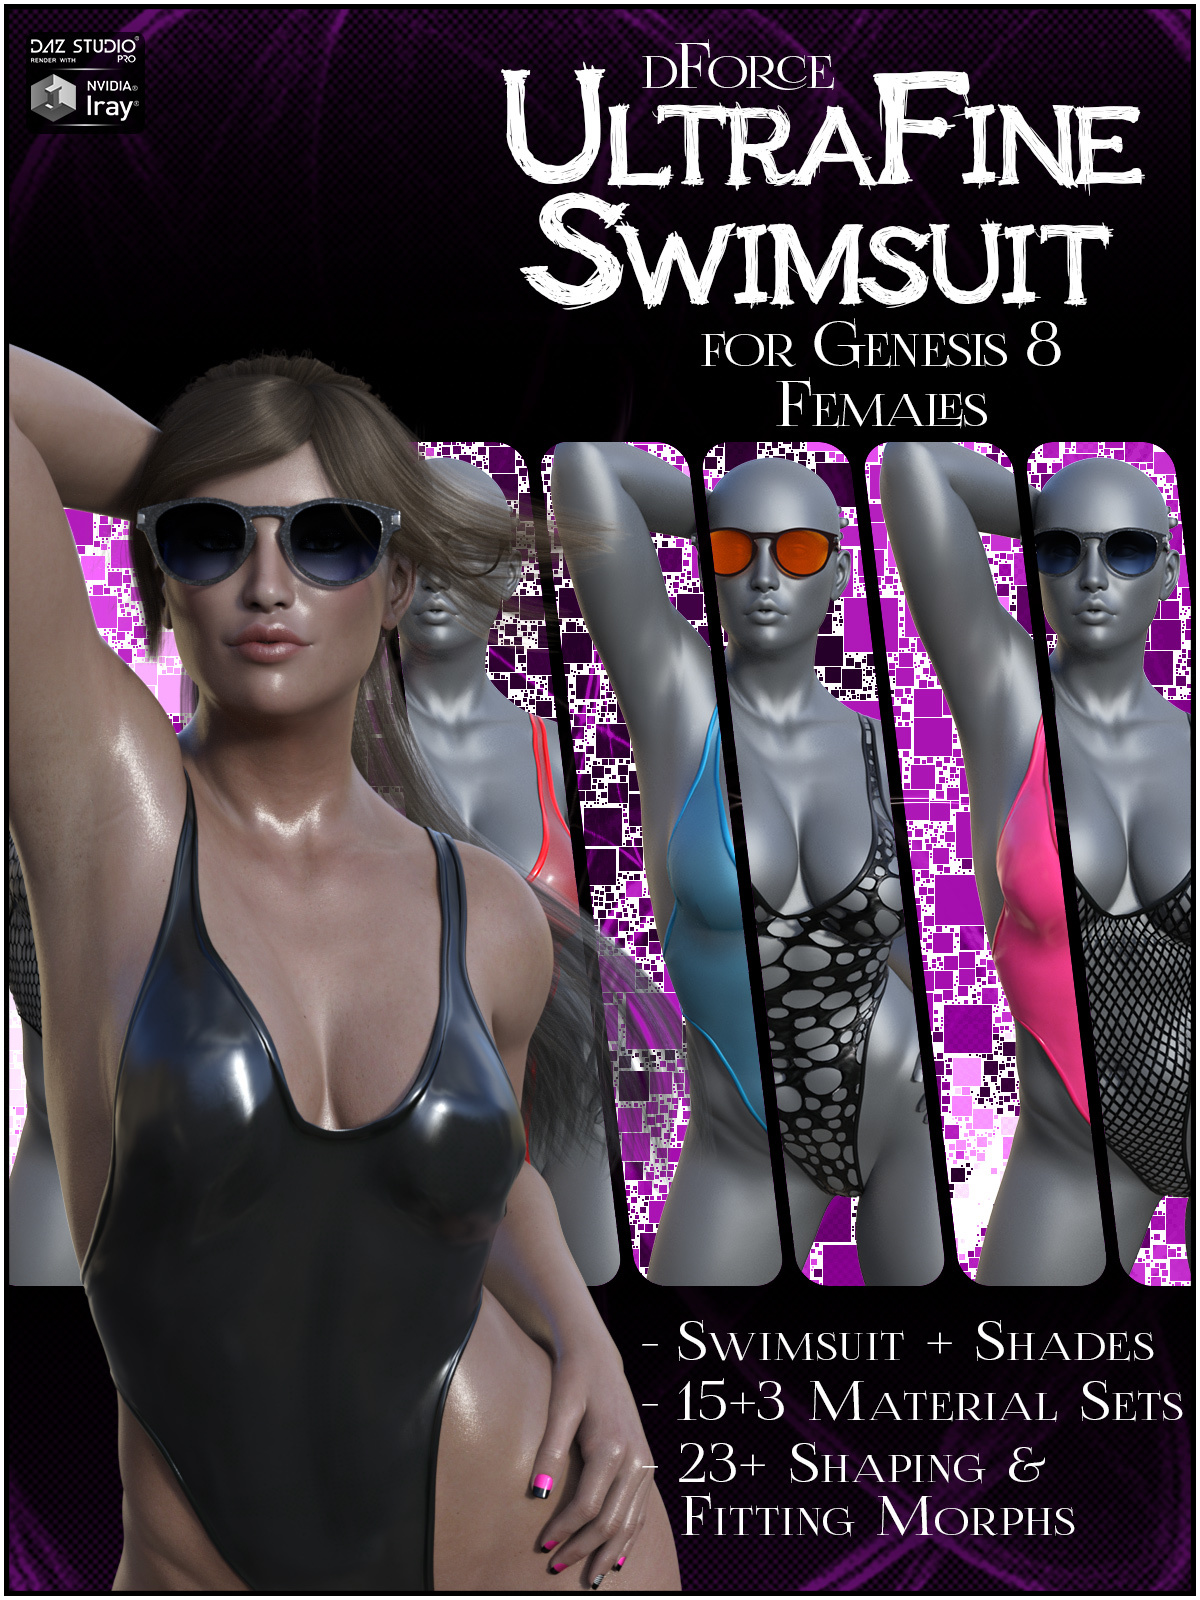 dForce UltraFine Swimsuit for Genesis 8 Females by SWTrium